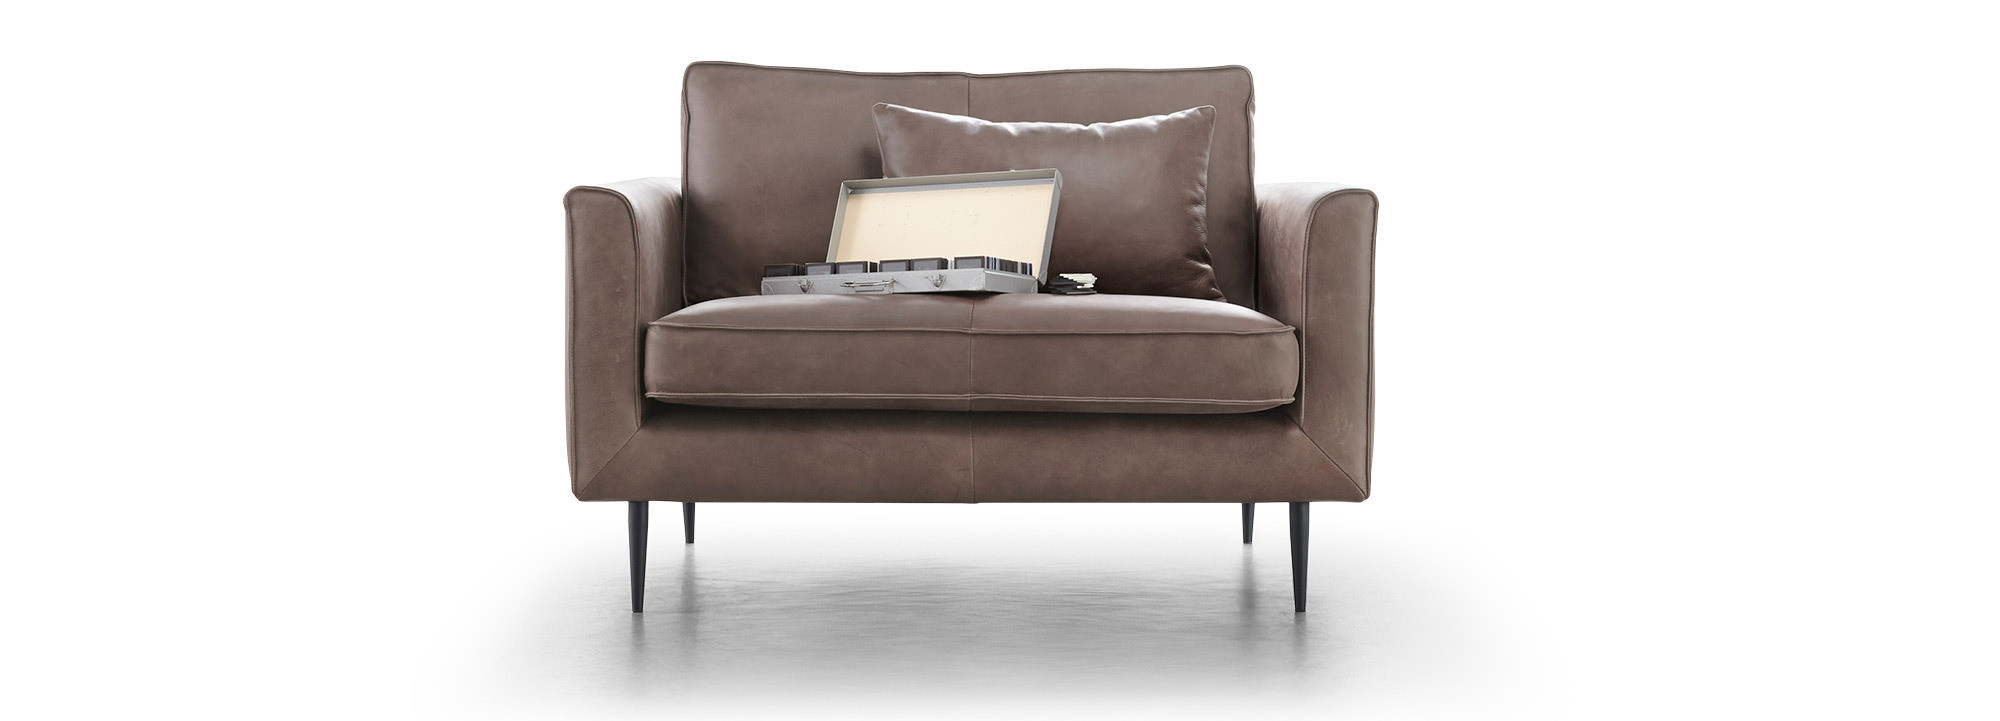 Loveseat Dutchz 1300